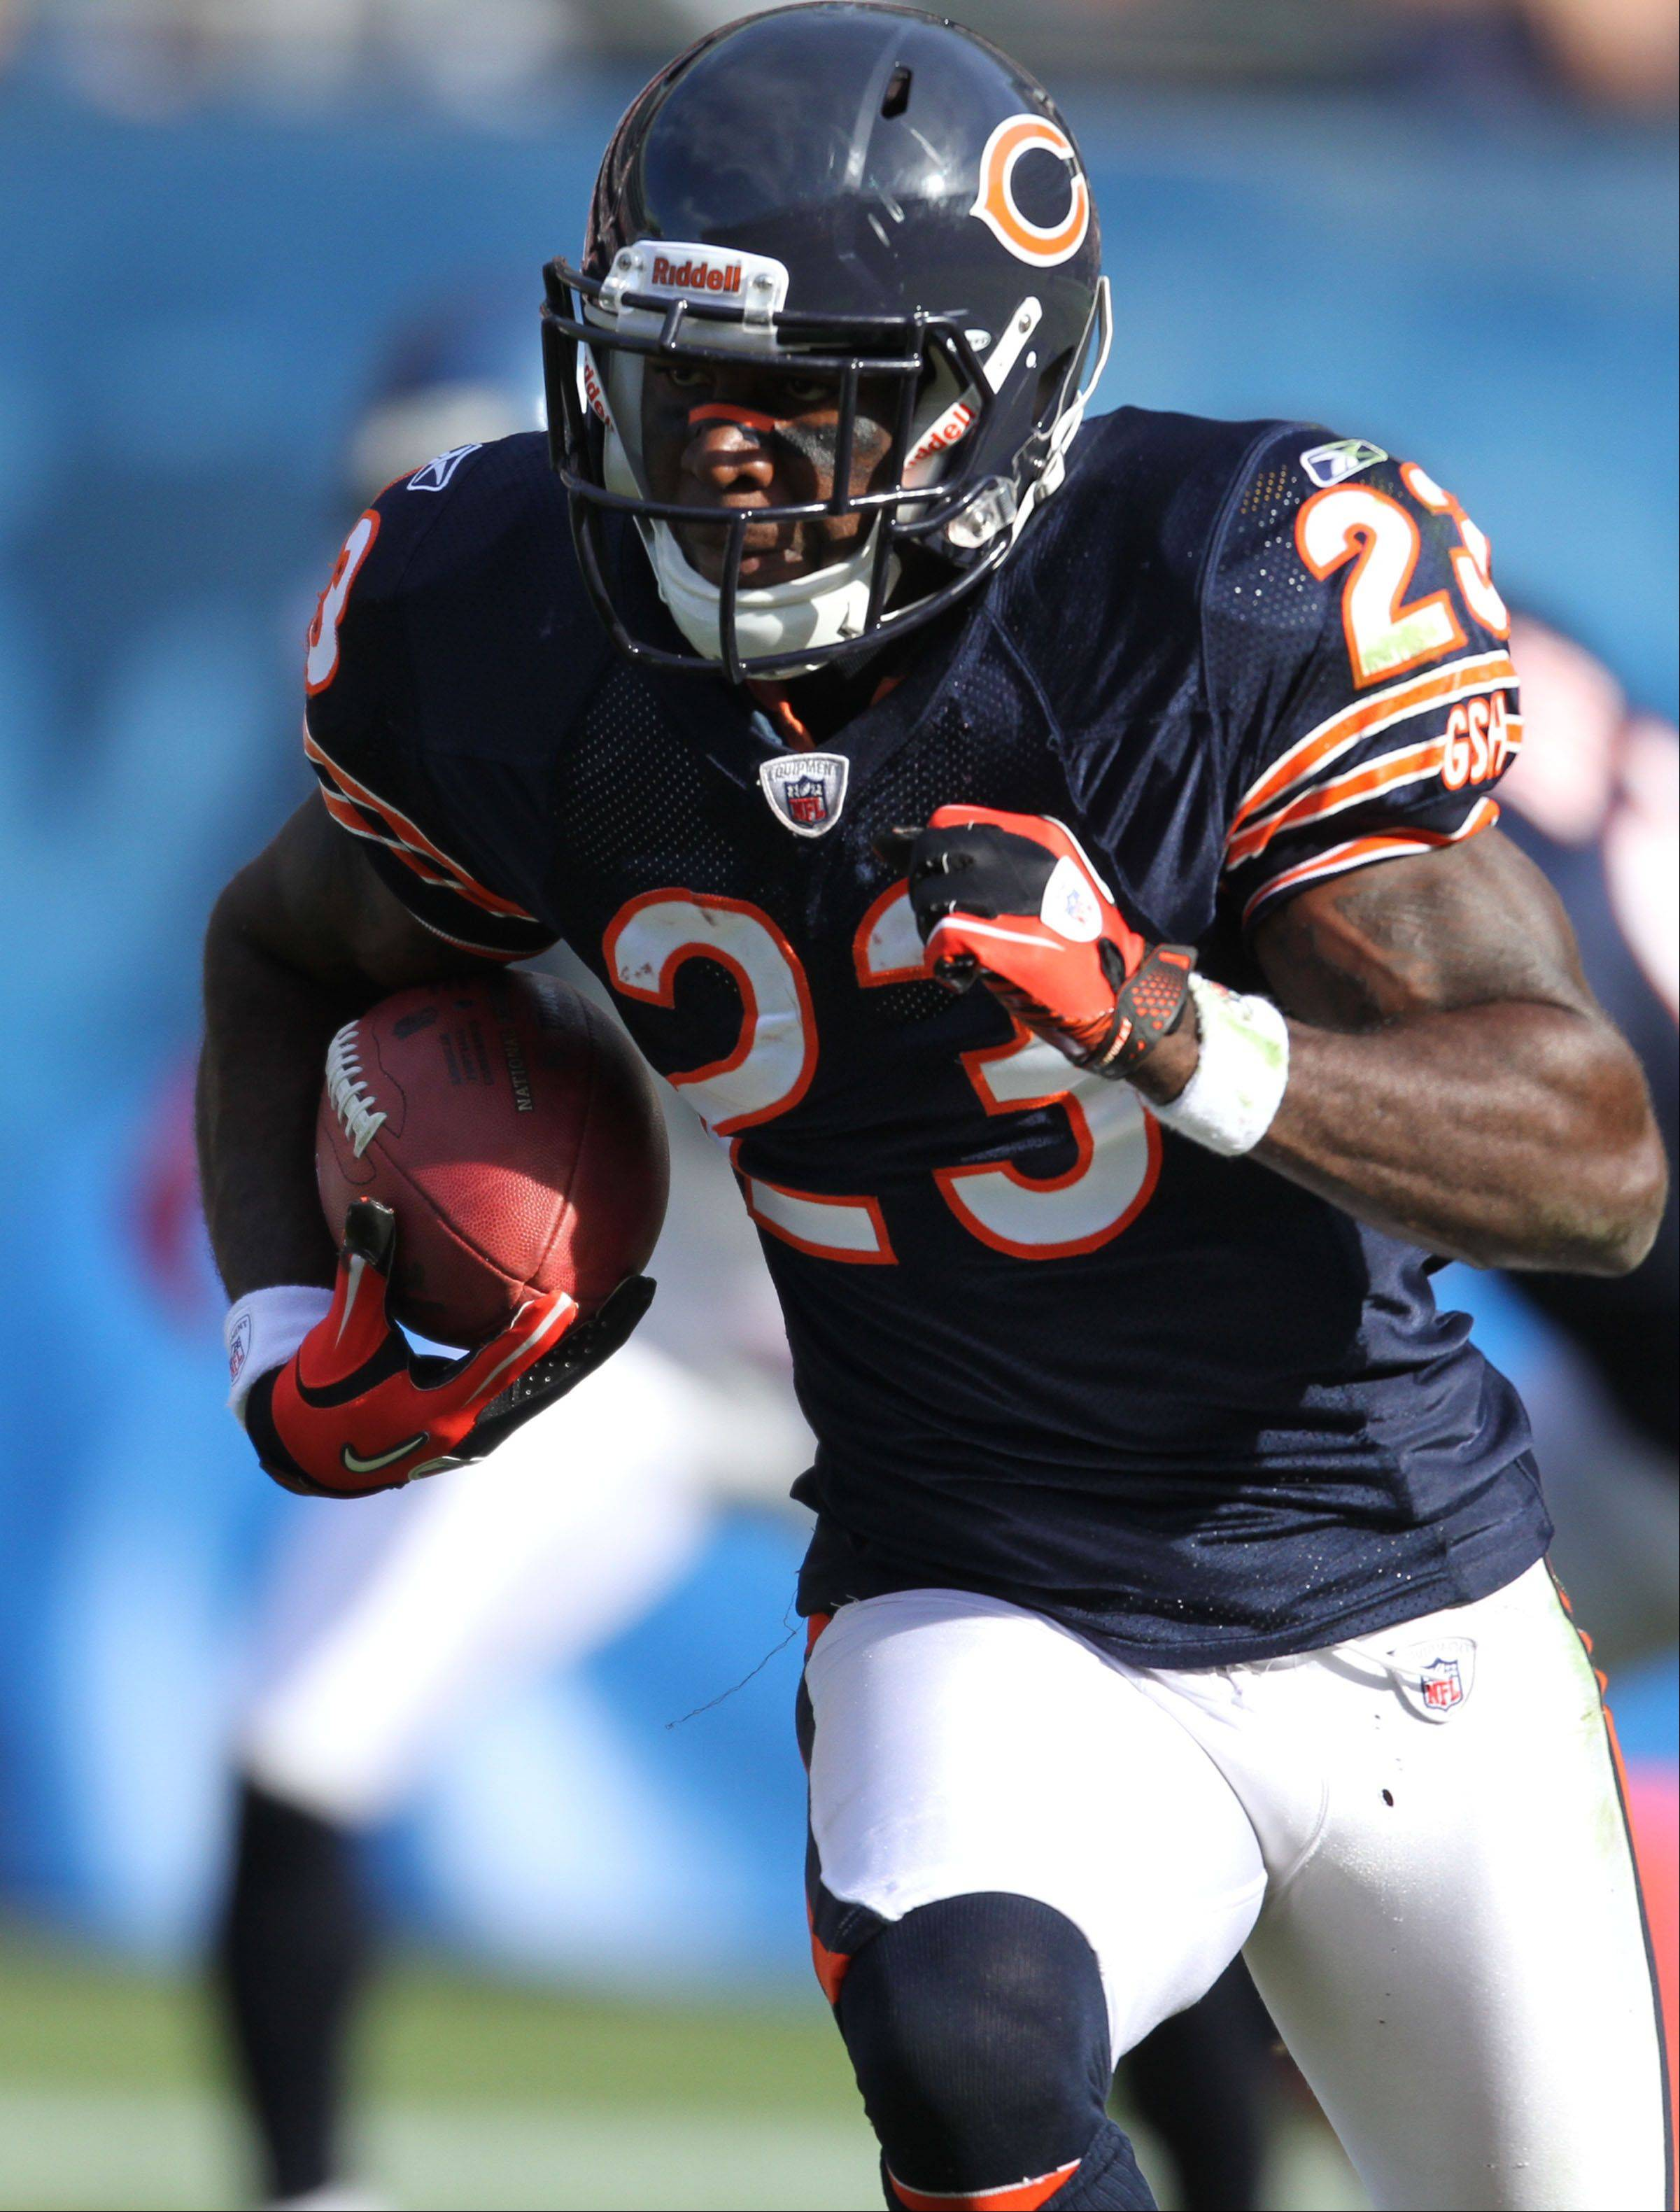 George LeClaire/gleclarie@dailyherald.com � Chicago Bears' wide receiver Devin Hester returns a punt here for a touchdown late in the second half against Seattle Seahawks 23-20 at Soldier Field in Chicago on Sunday, October 17. � � �